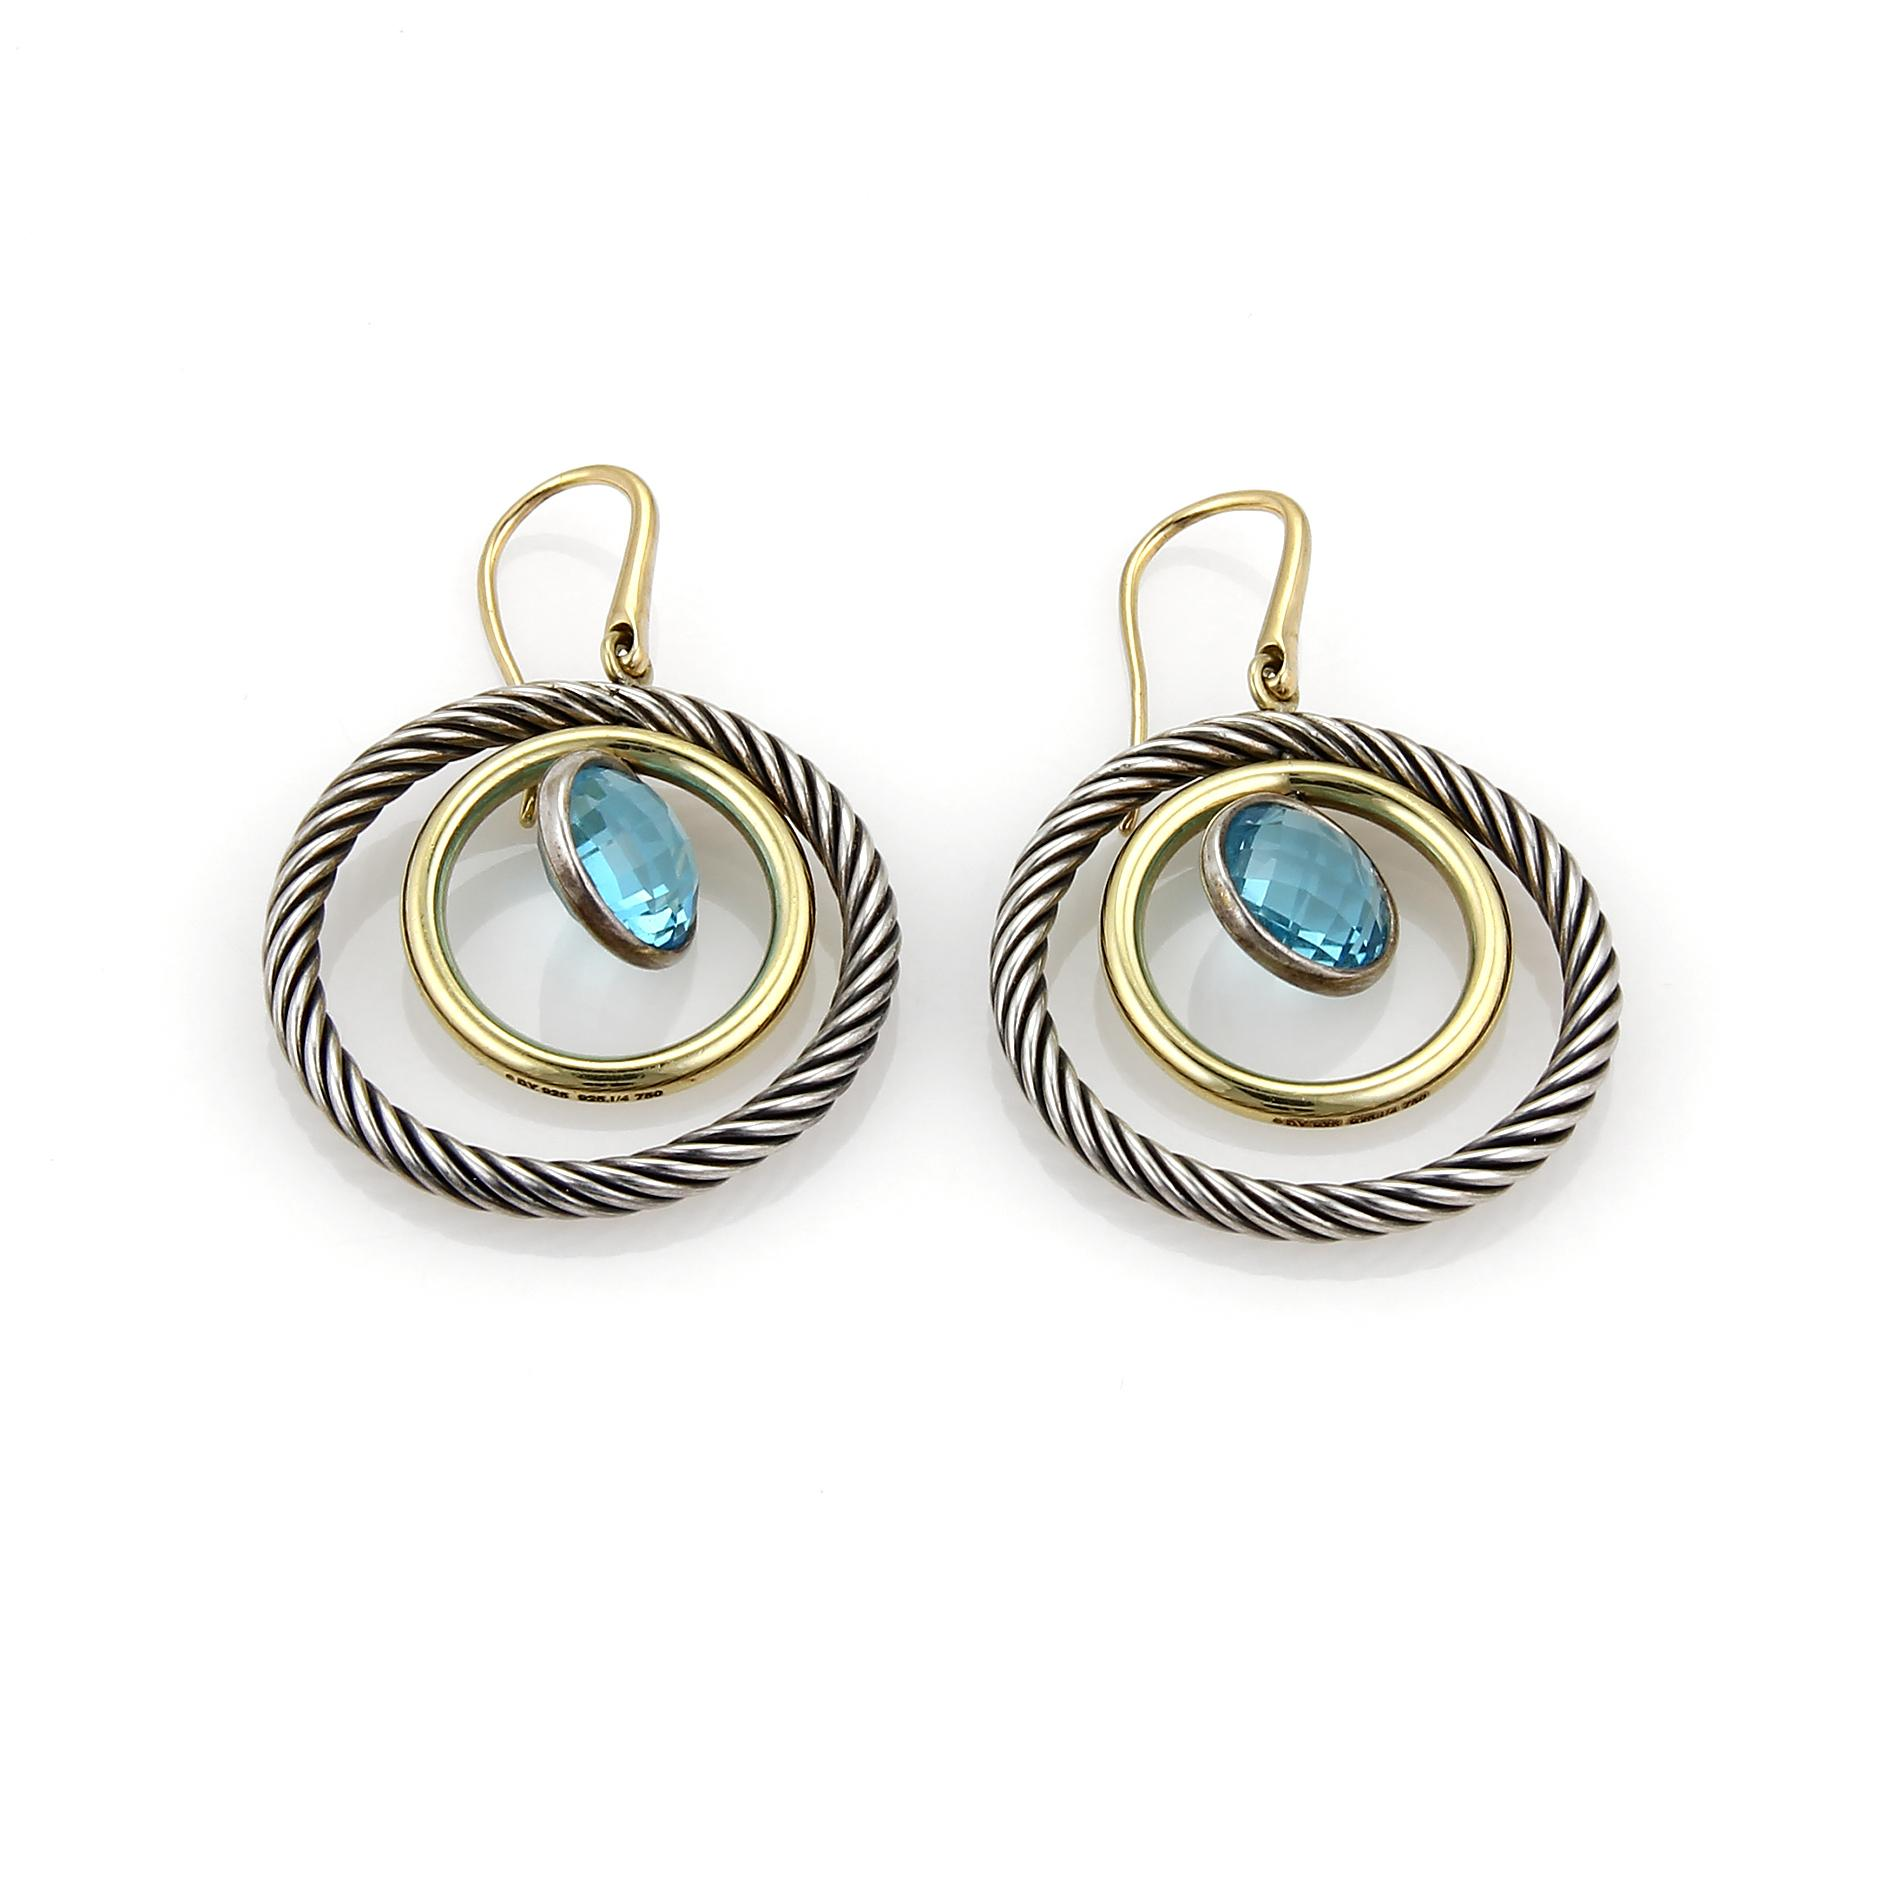 David Yurman 18k Renaissance Blue Topaz Drop Earrings 7ioXROWuc